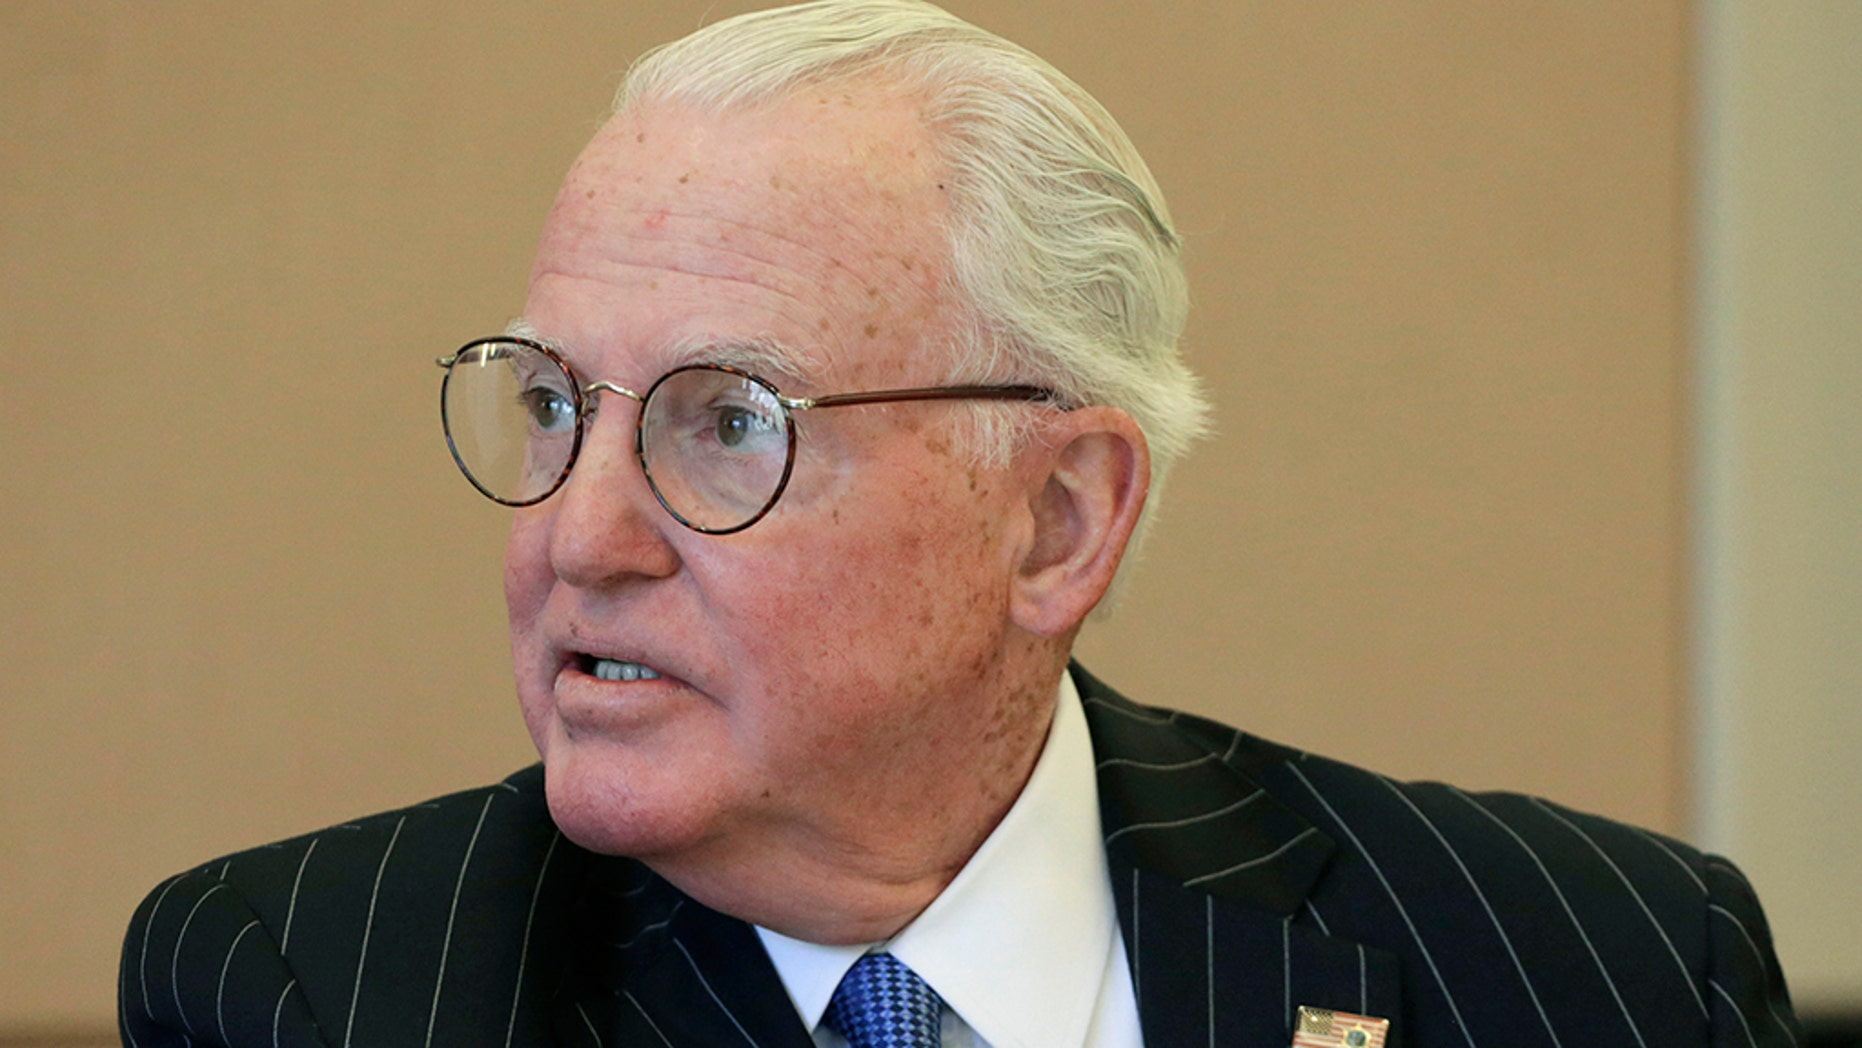 Alderman Ed Burke, 75, is charged with one count of attempted extortion for conveying to company executives in 2017 that they'd get the permits if they signed on as clients at Burke's private property tax law firm in Chicago. (AP Photo/M. Spencer Green, File)